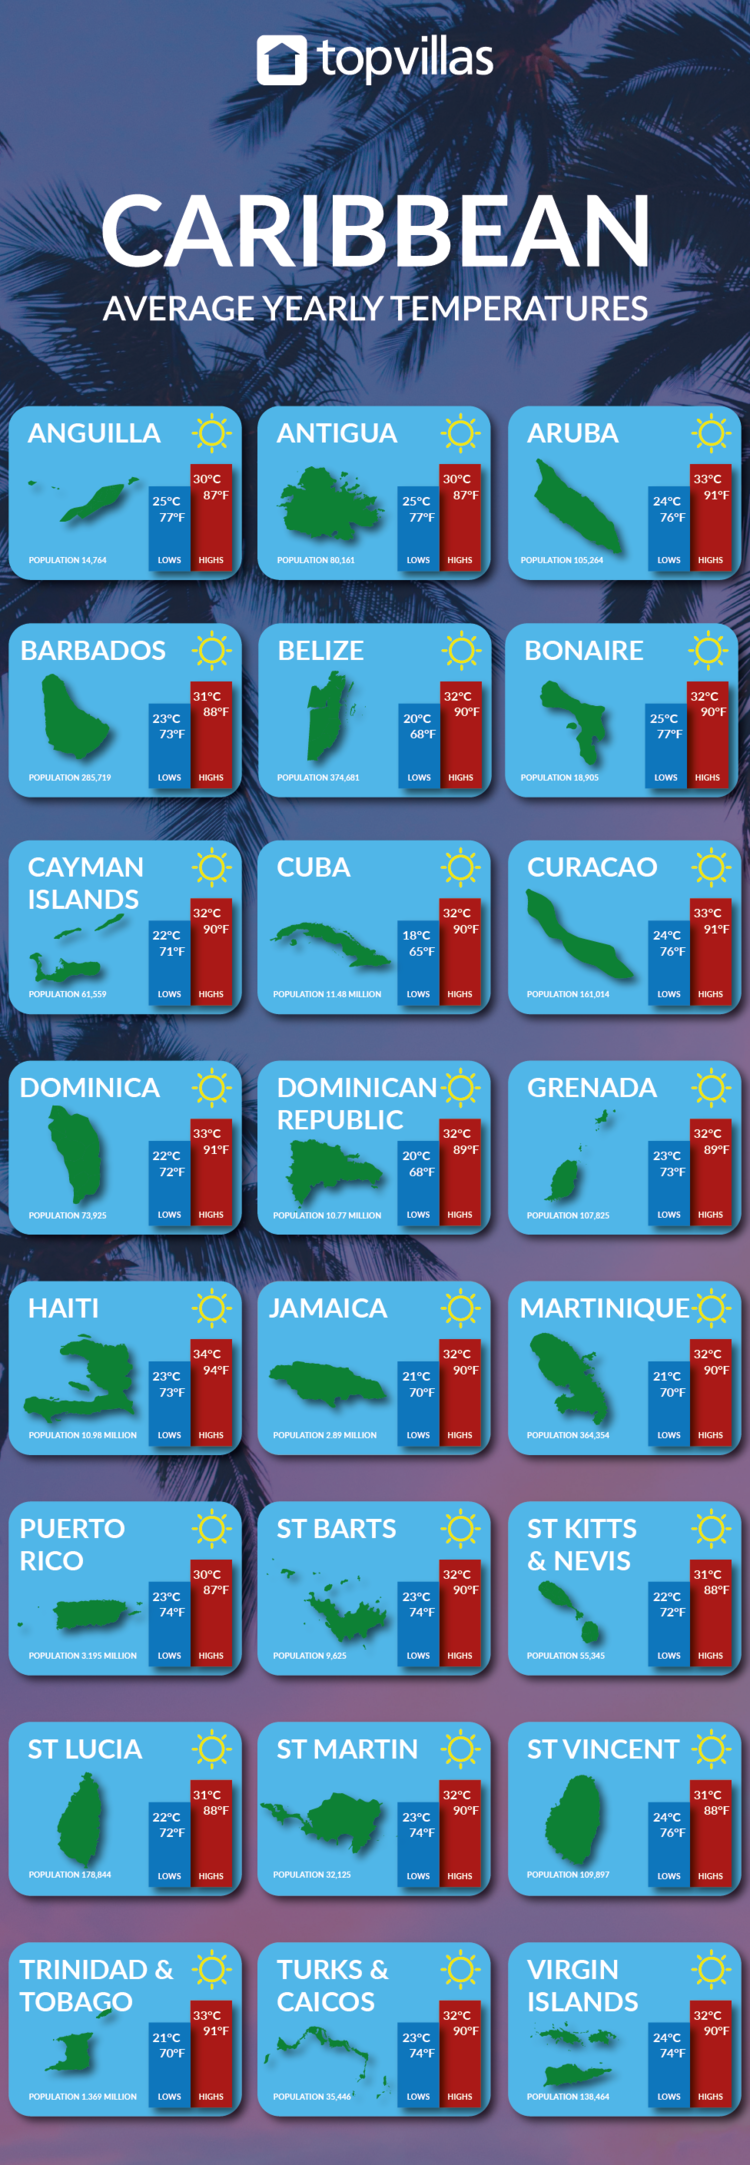 The best time to visit the Caribbean